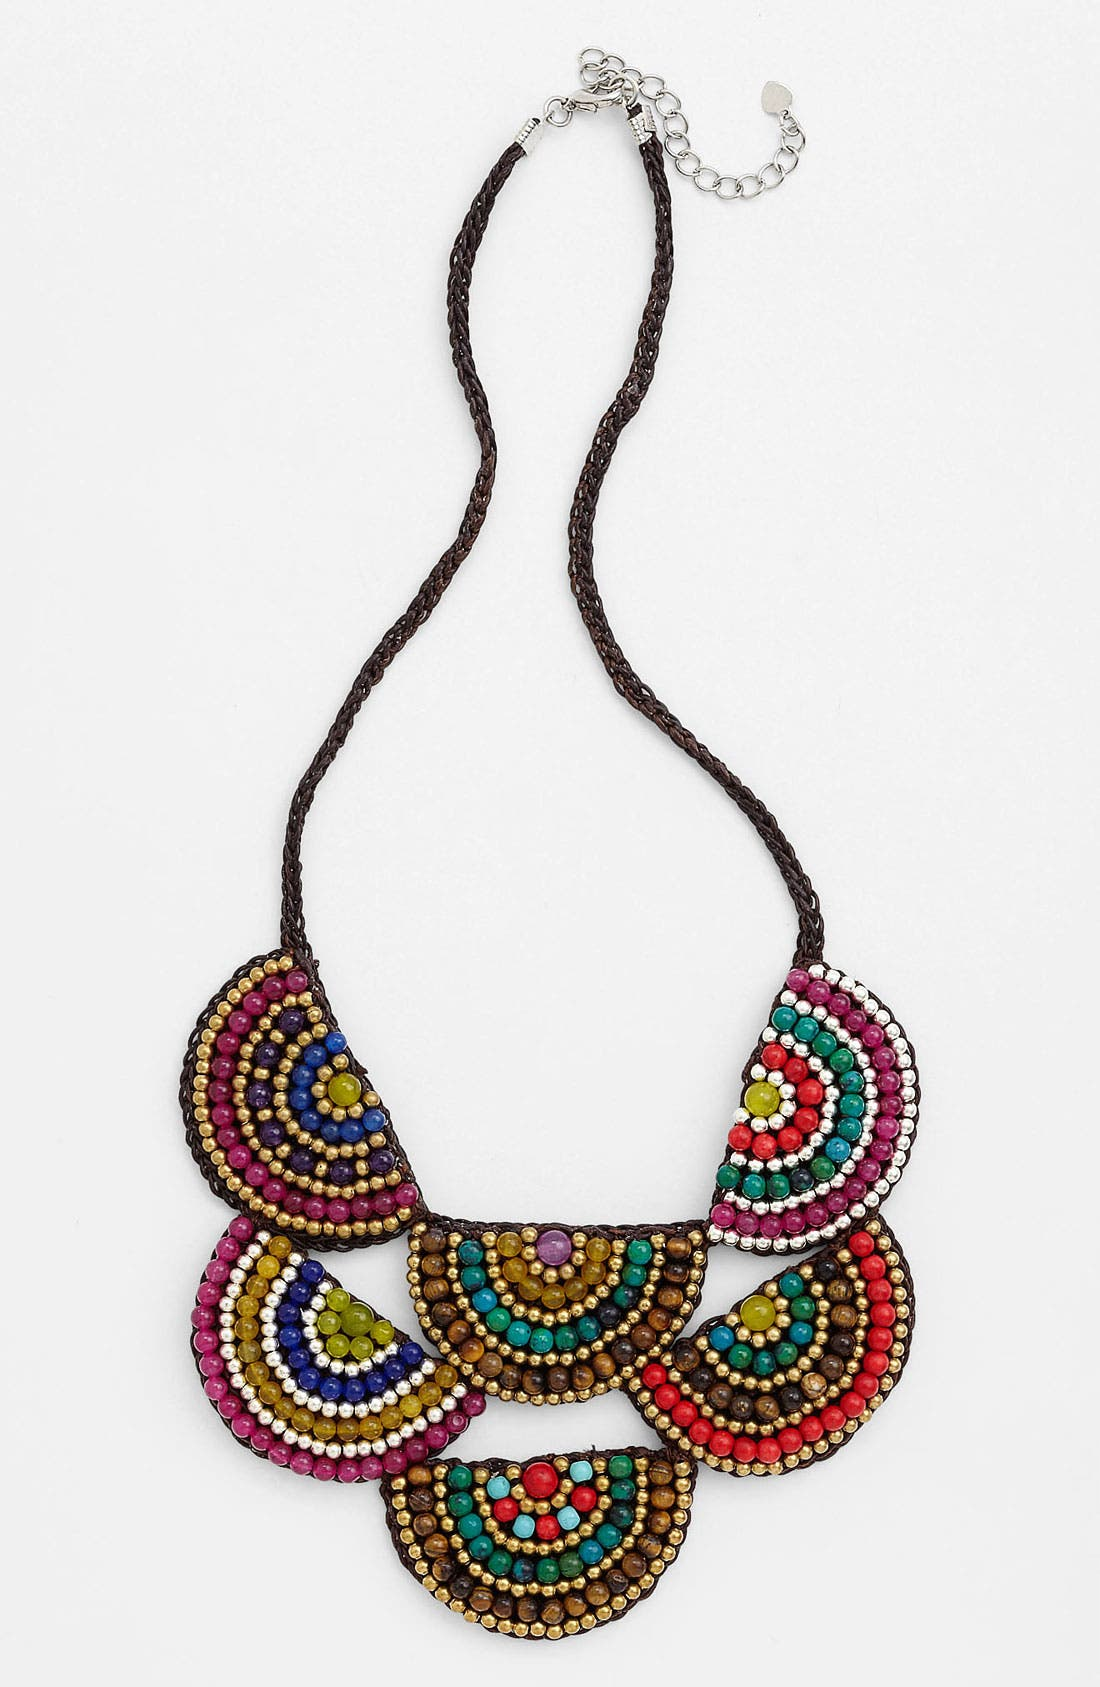 Main Image - Panacea Two Tier Corded Rope Necklace